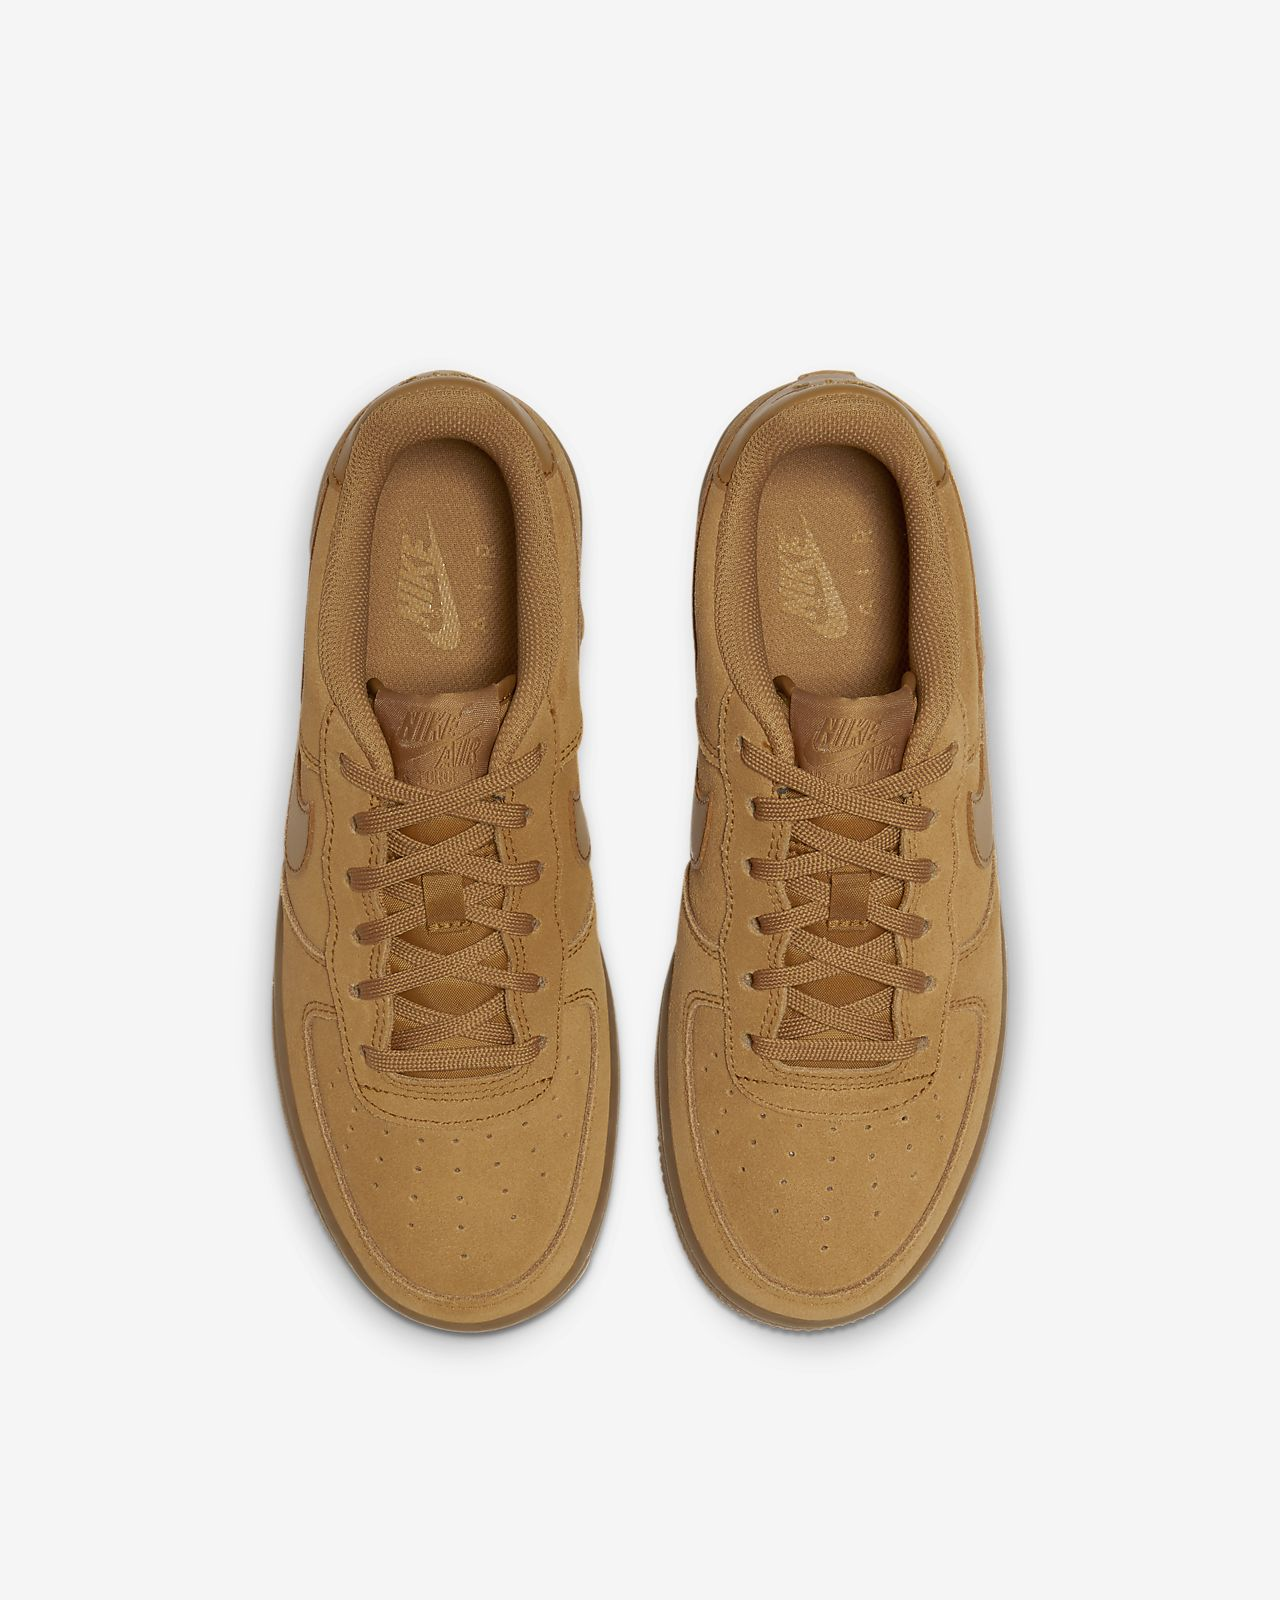 Details about Nike Air Force 1 LV8 3 Jr BQ5485 700 shoes brown